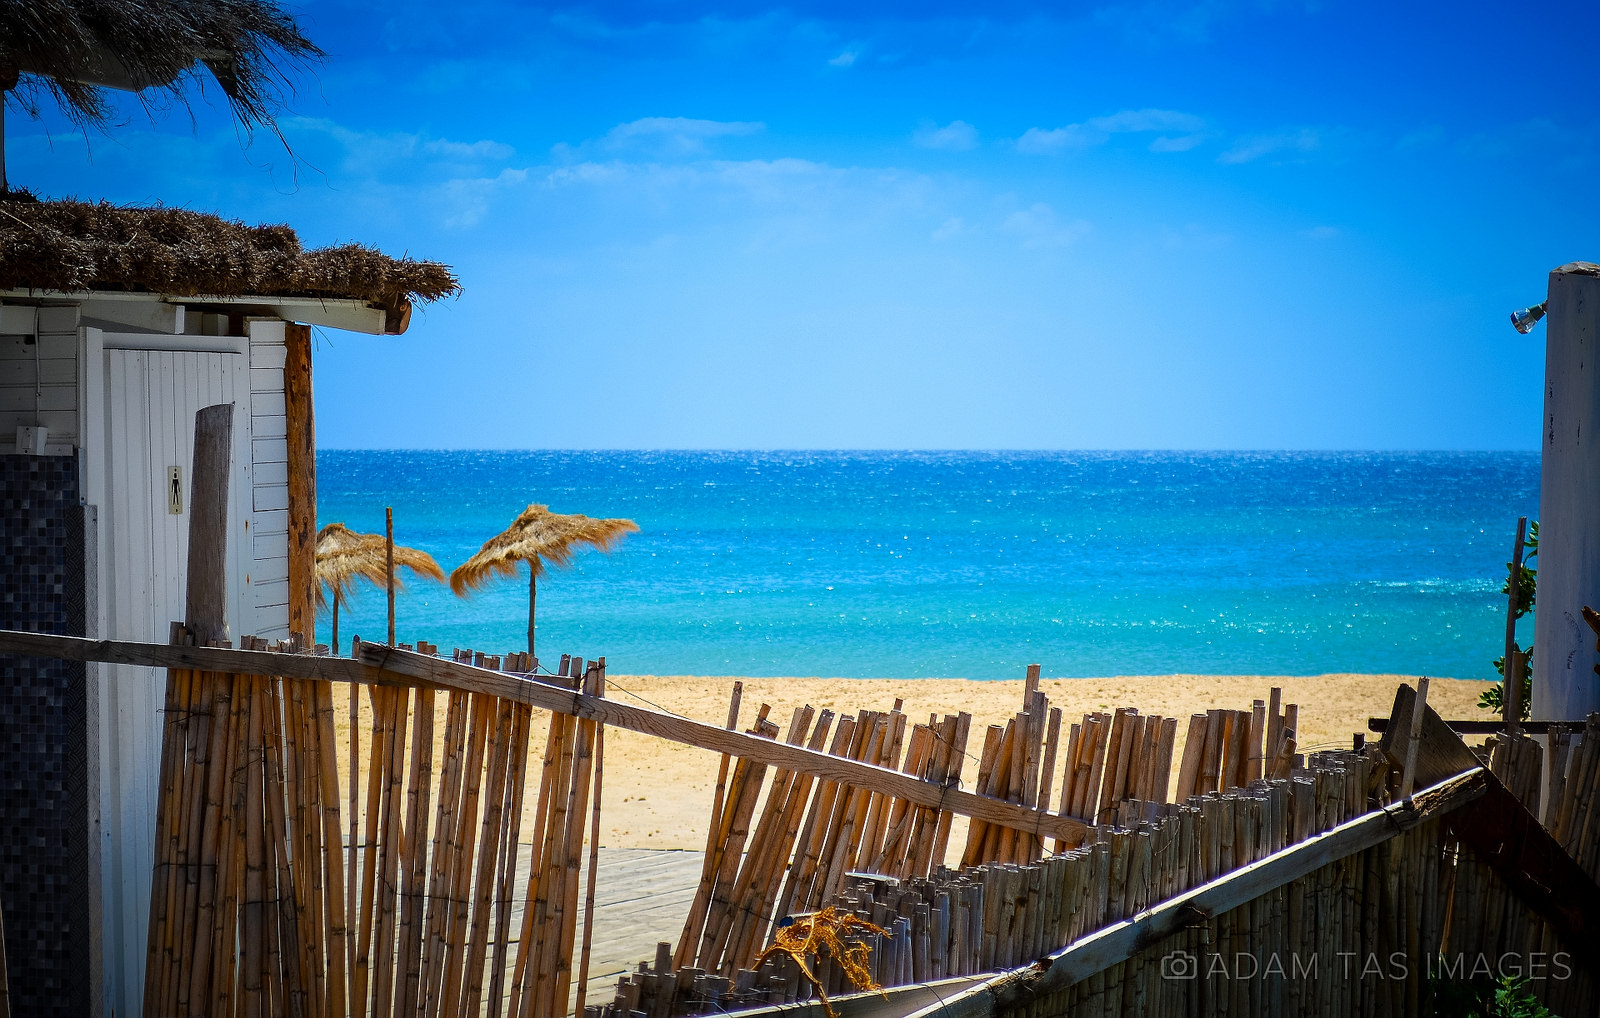 Abandoned beach bar in Tunisia. Photo by Adam Tas Images.